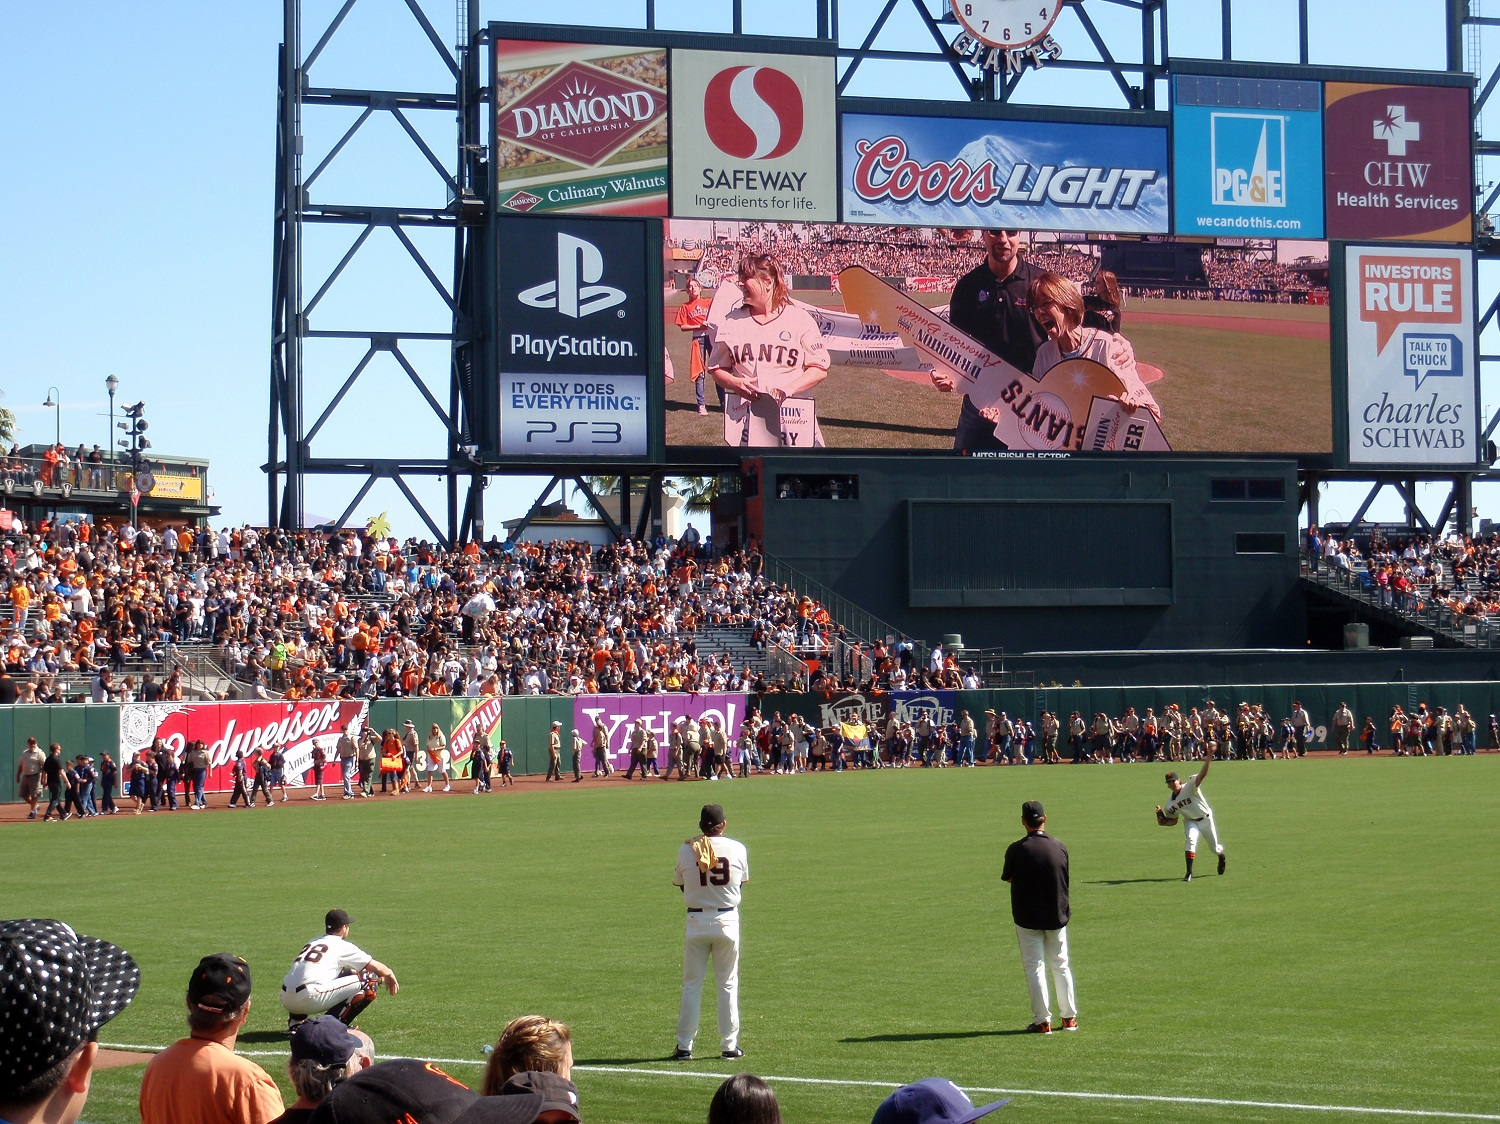 Teen Is Totally Mortified as Adults Dance Around Him on the Jumbotron at Padres Game